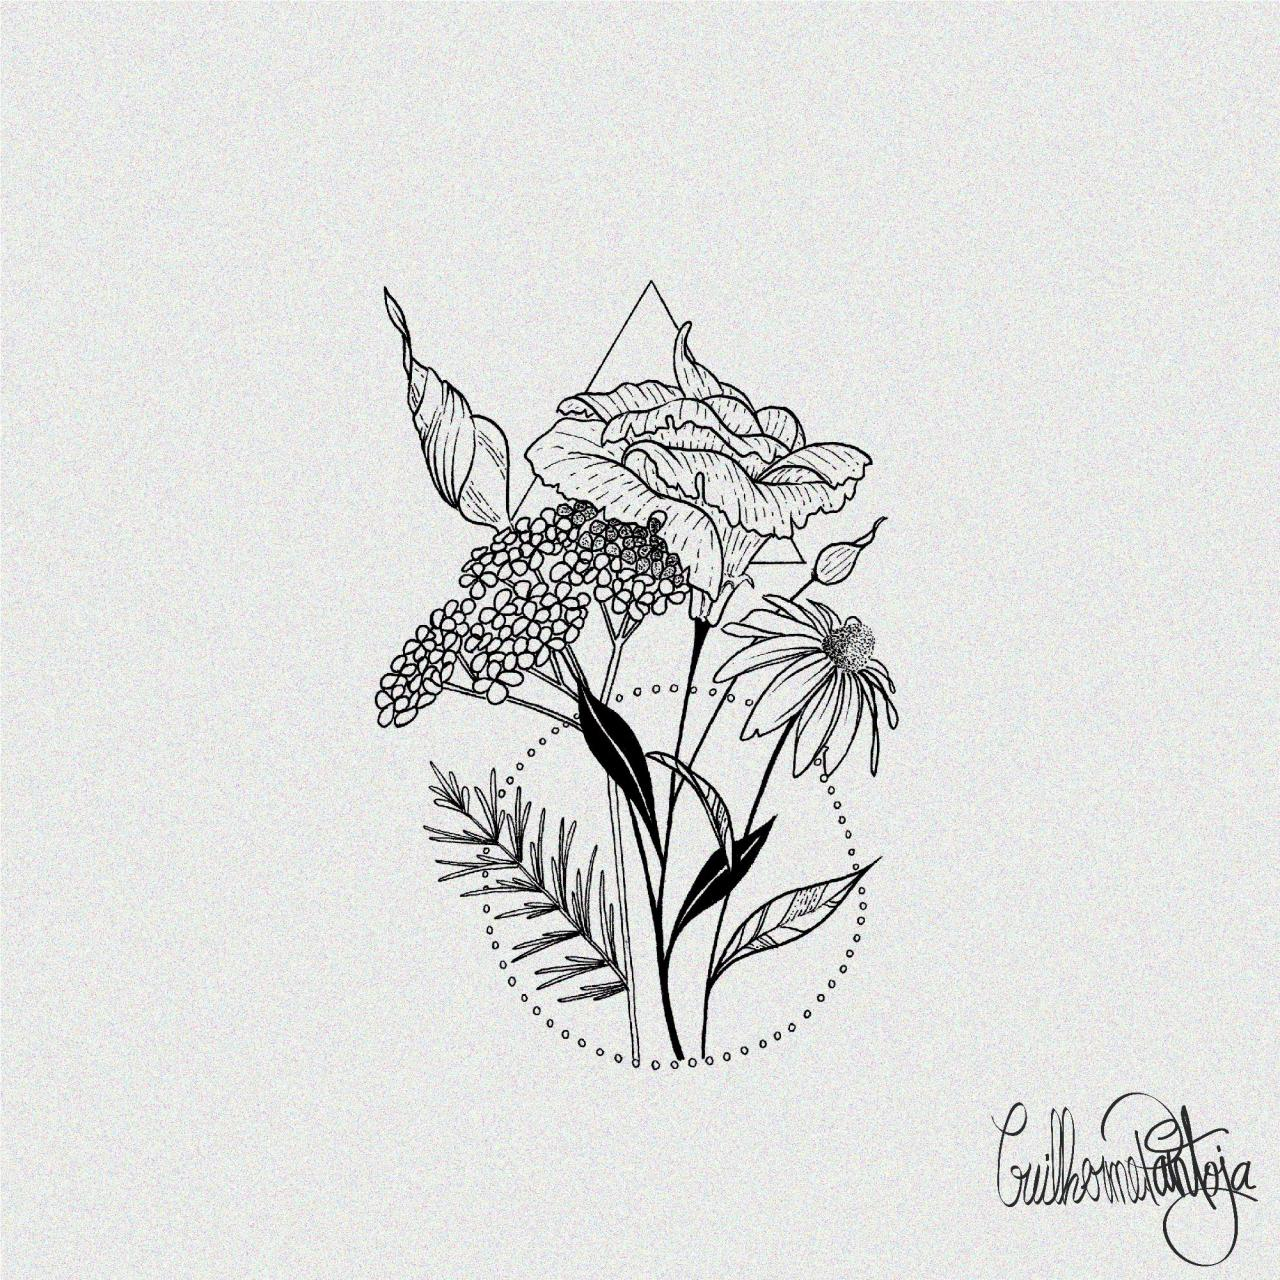 Lisianthus tattoo i designed for a fellow redditor. I do dotwork, linework nature themes black and white, let me helo you with yours!